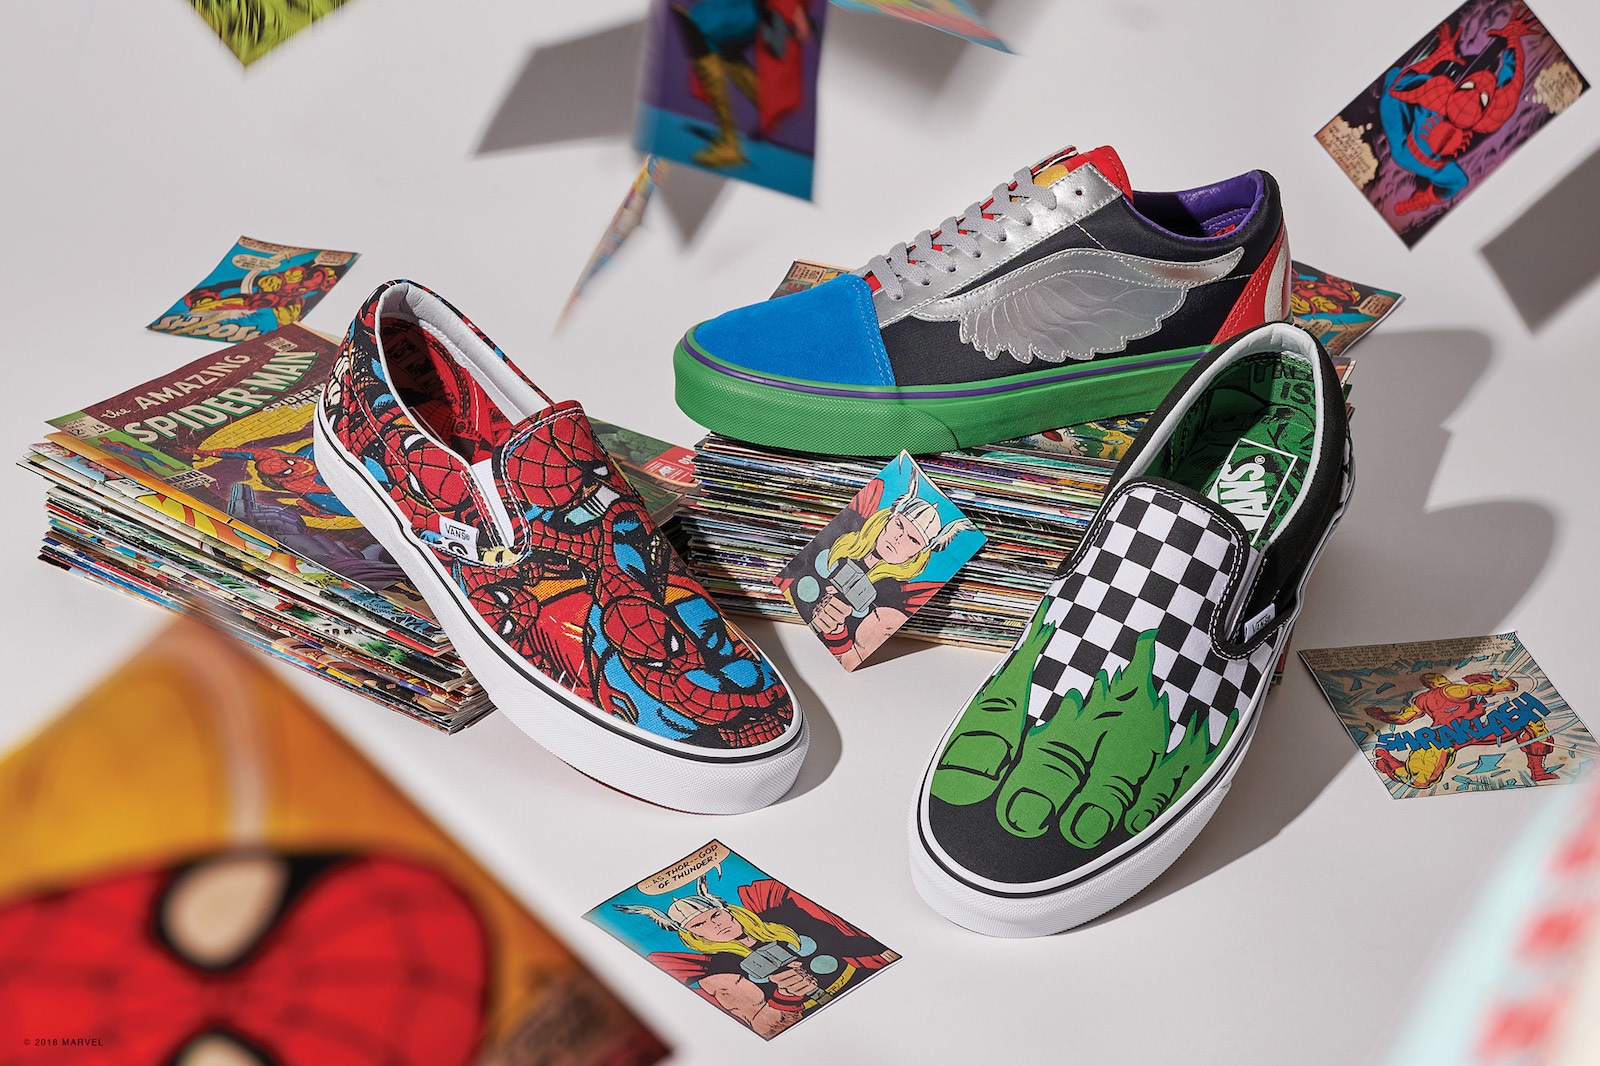 Items from the Marvel x Vans Heroic New Collection